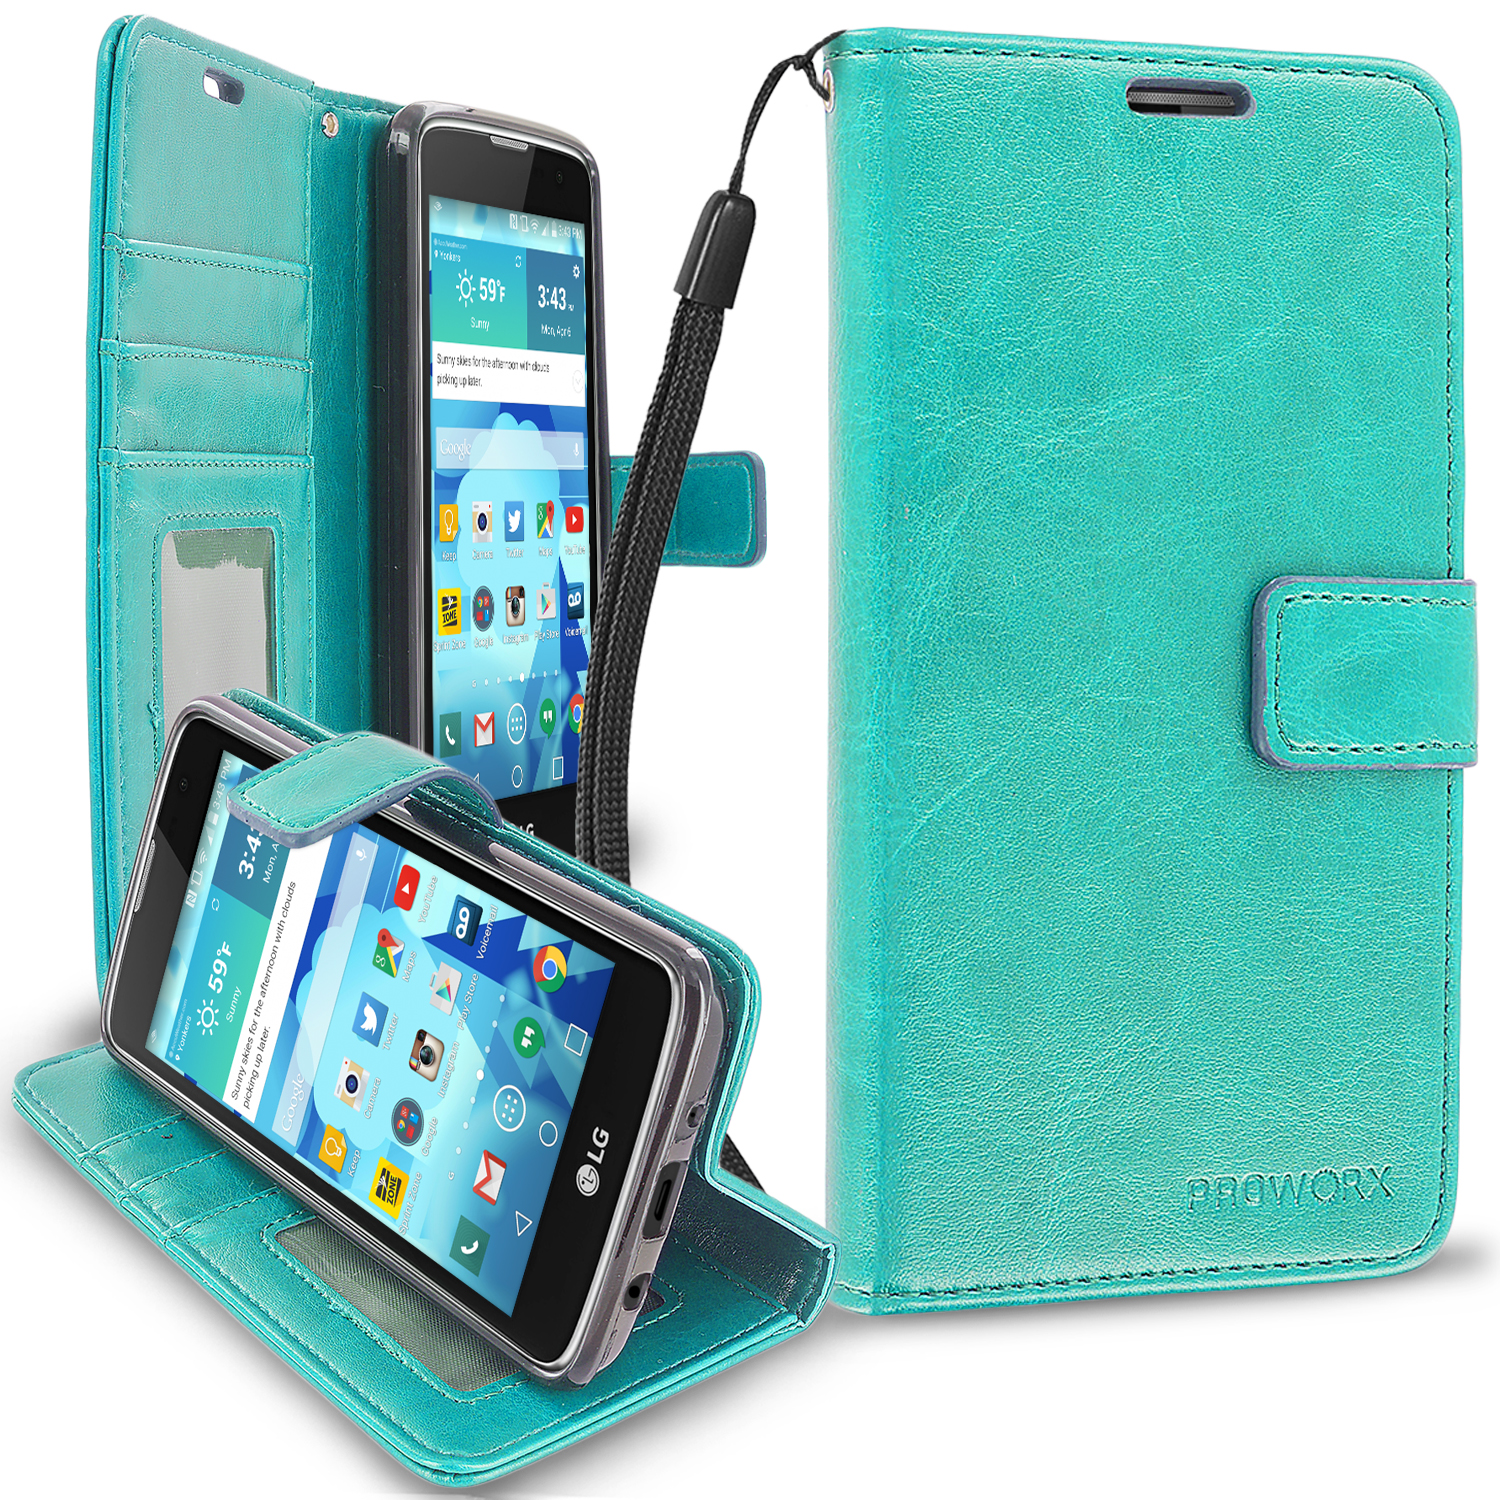 LG Tribute 5 K7 Phoenix 2 Escape 3 Treasure Mint Green ProWorx Wallet Case Luxury PU Leather Case Cover With Card Slots & Stand